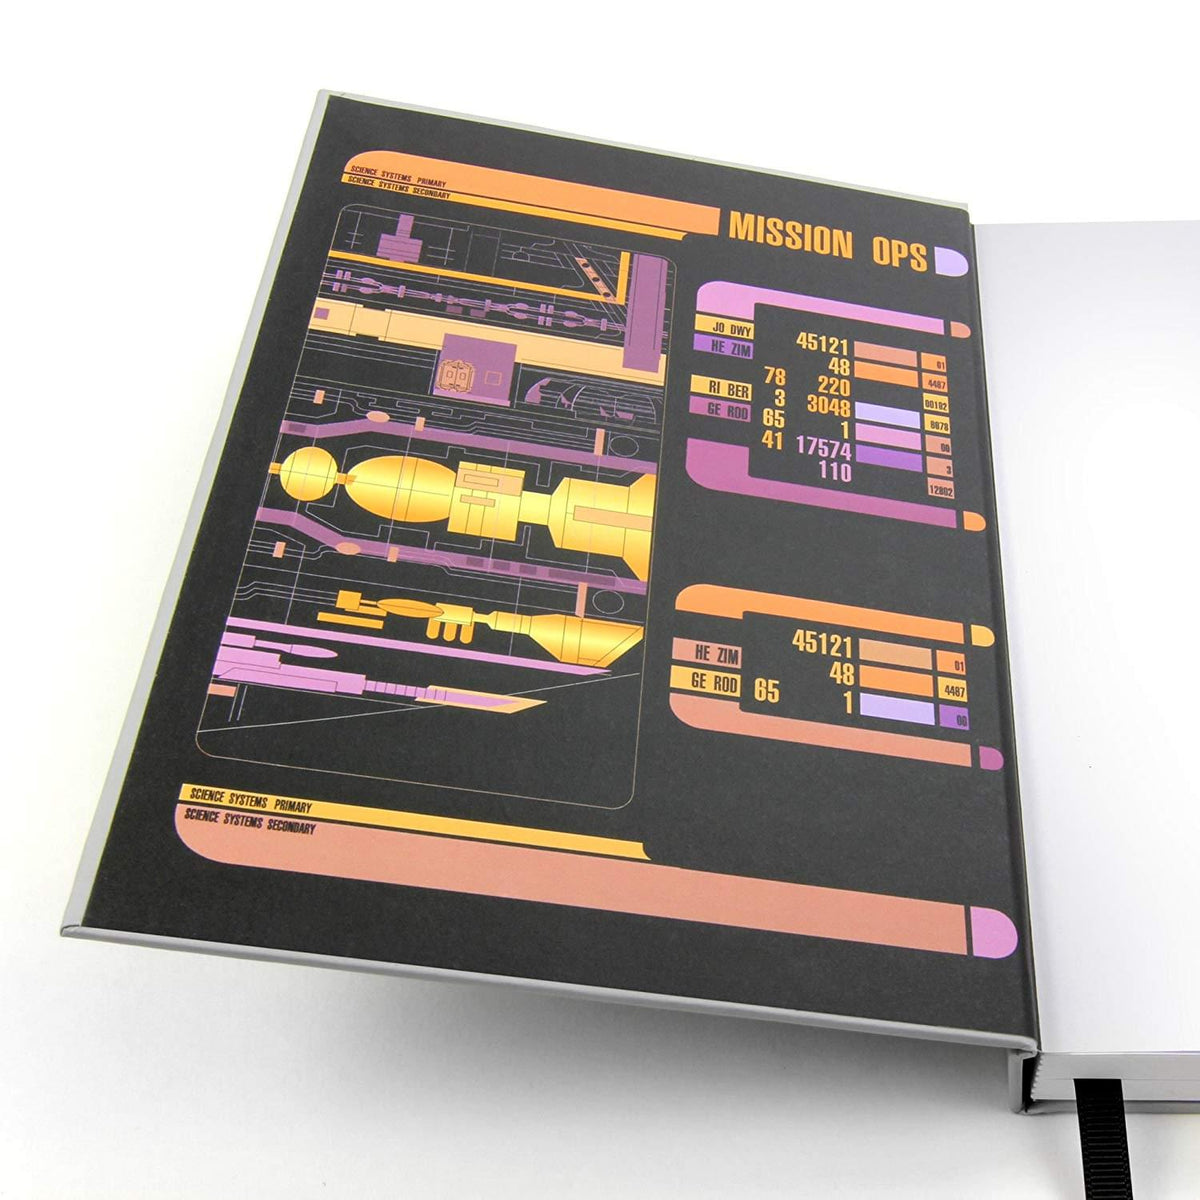 Star Trek: The Next Generation PADD Hard Cover Journal